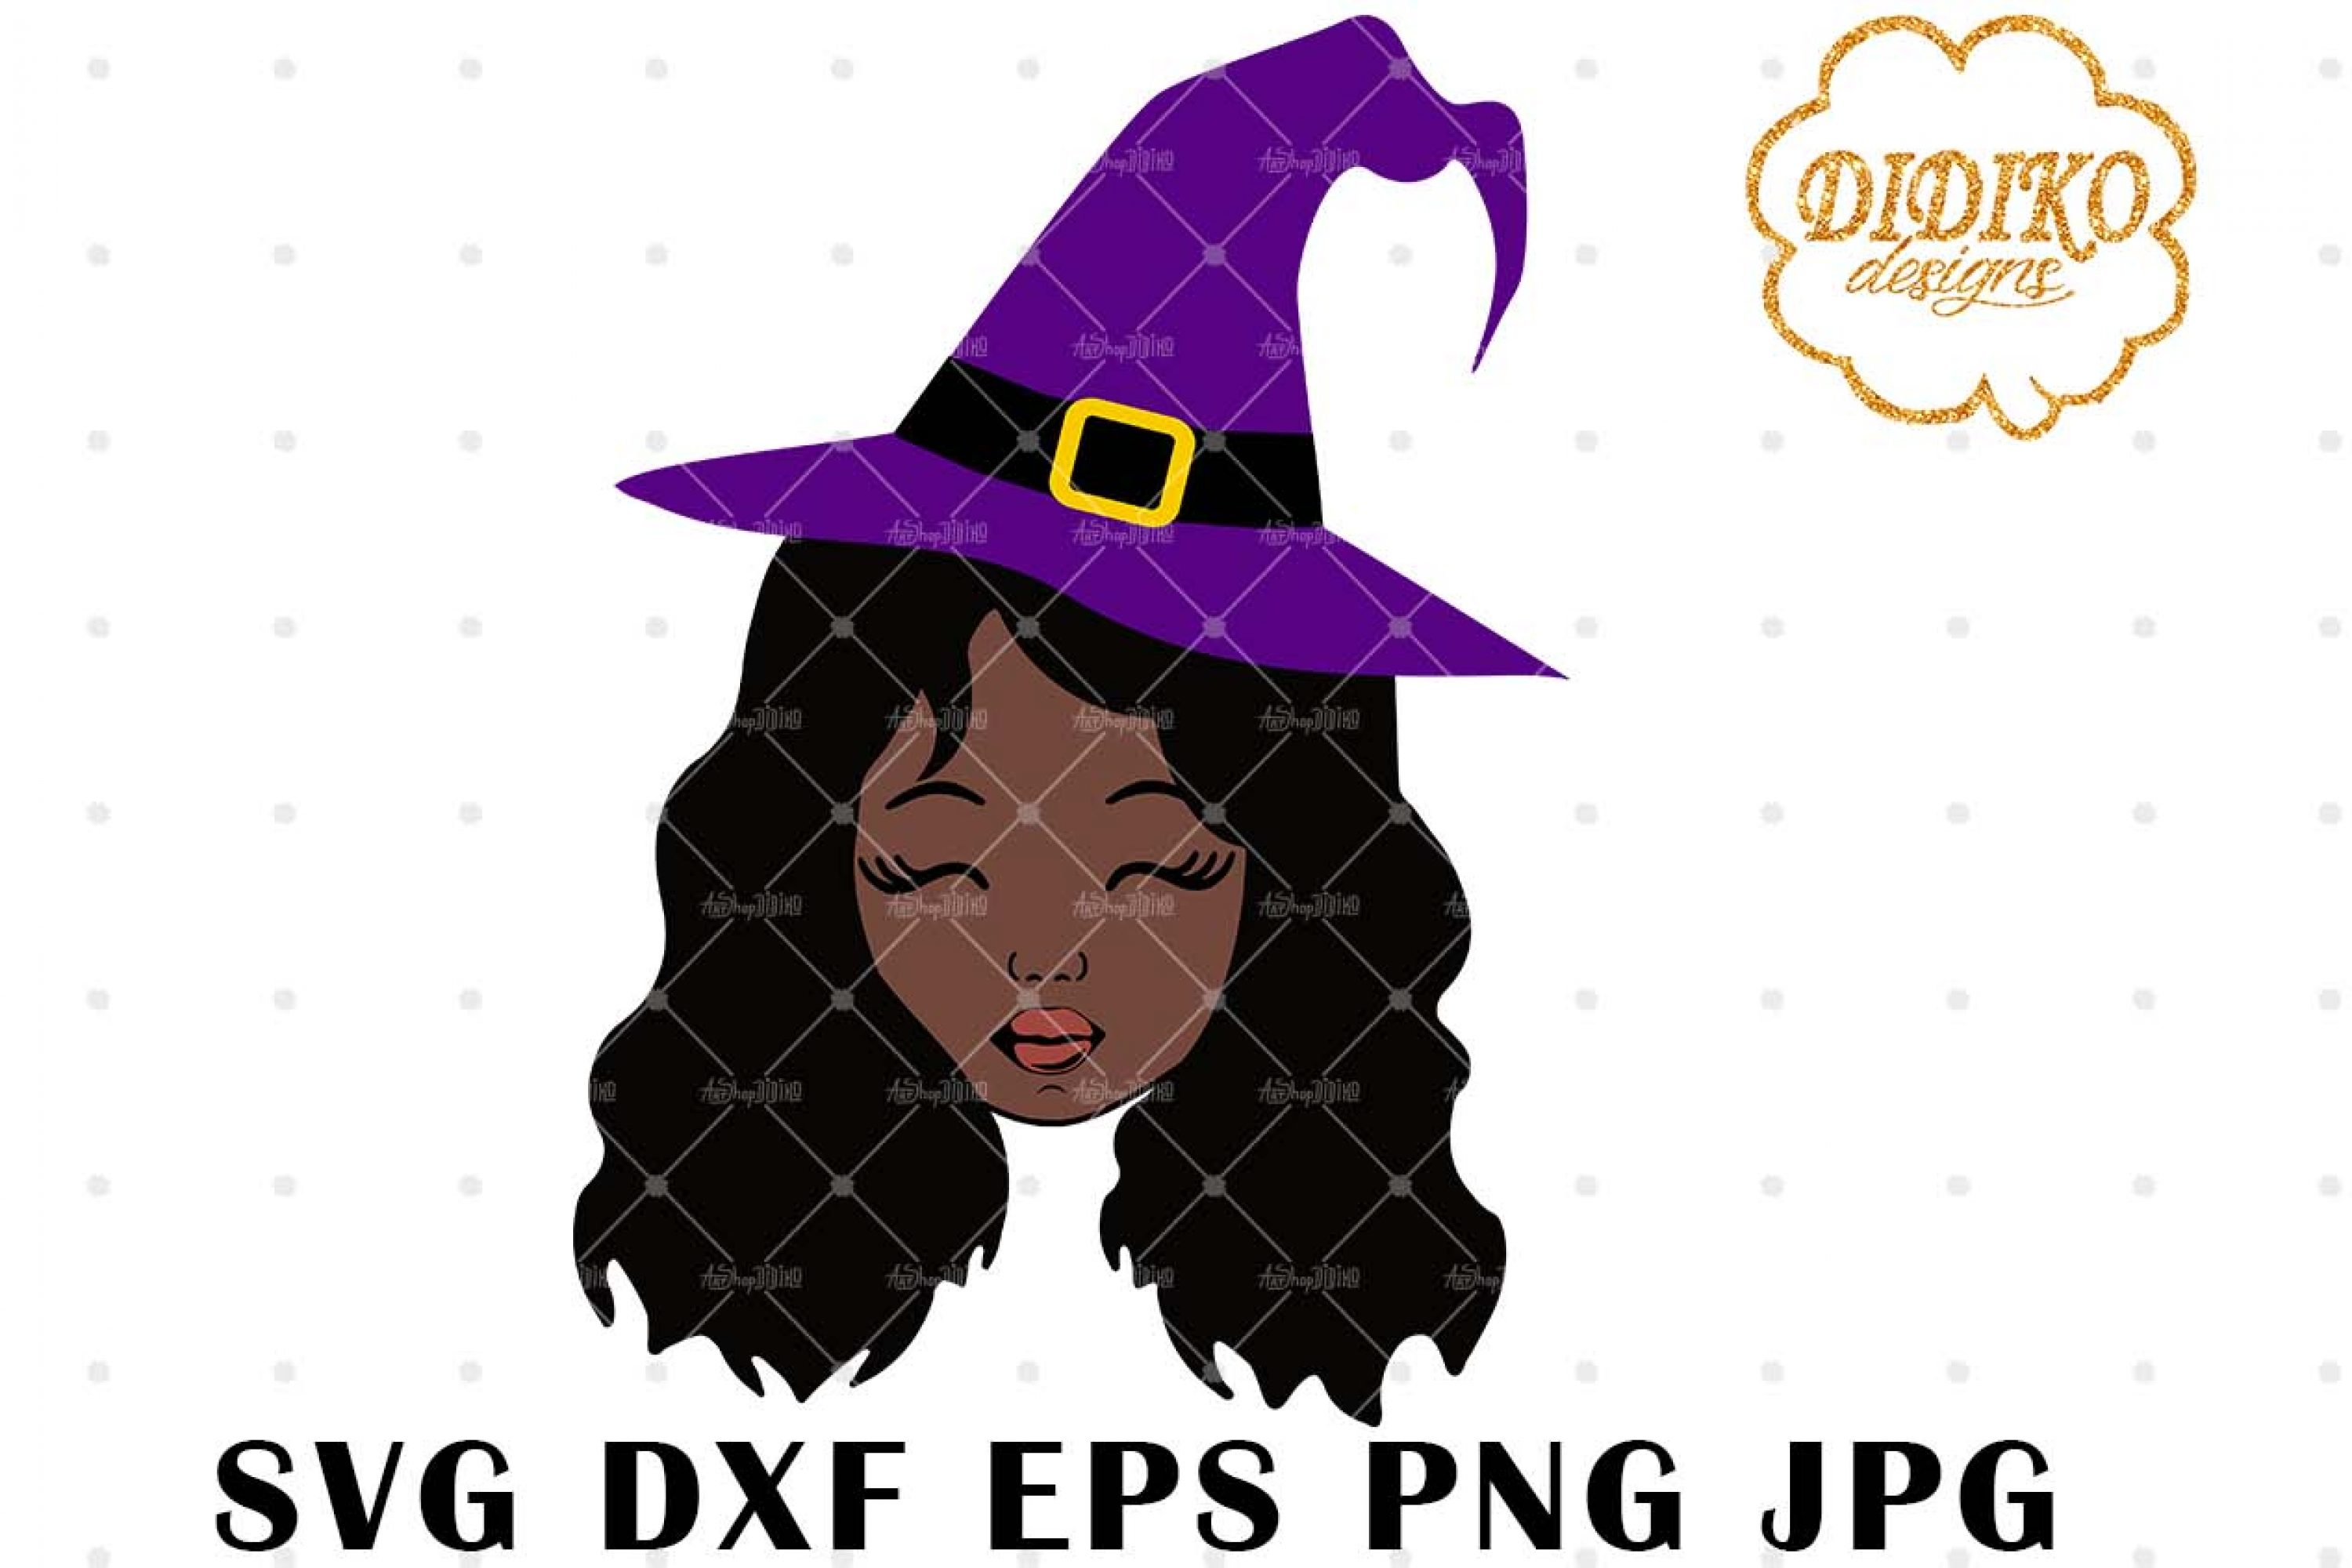 Halloween Afro Girl 5 SVG, Witch Hat SVG, Afro Puff svg